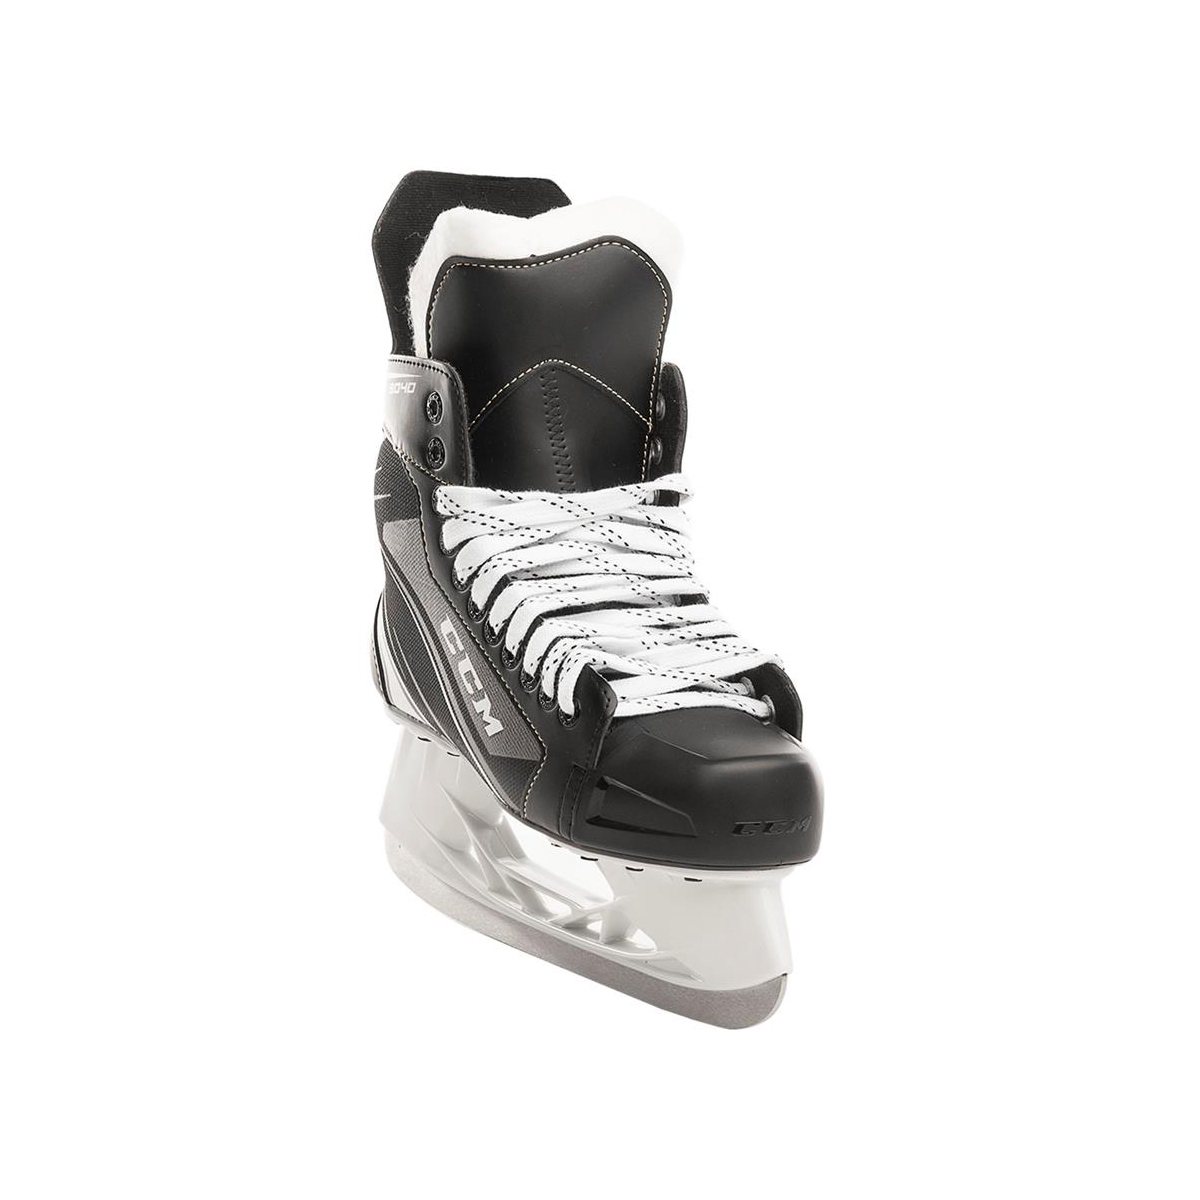 3327248846e CCM Tacks 9040 Senior Ice Hockey Skates Front